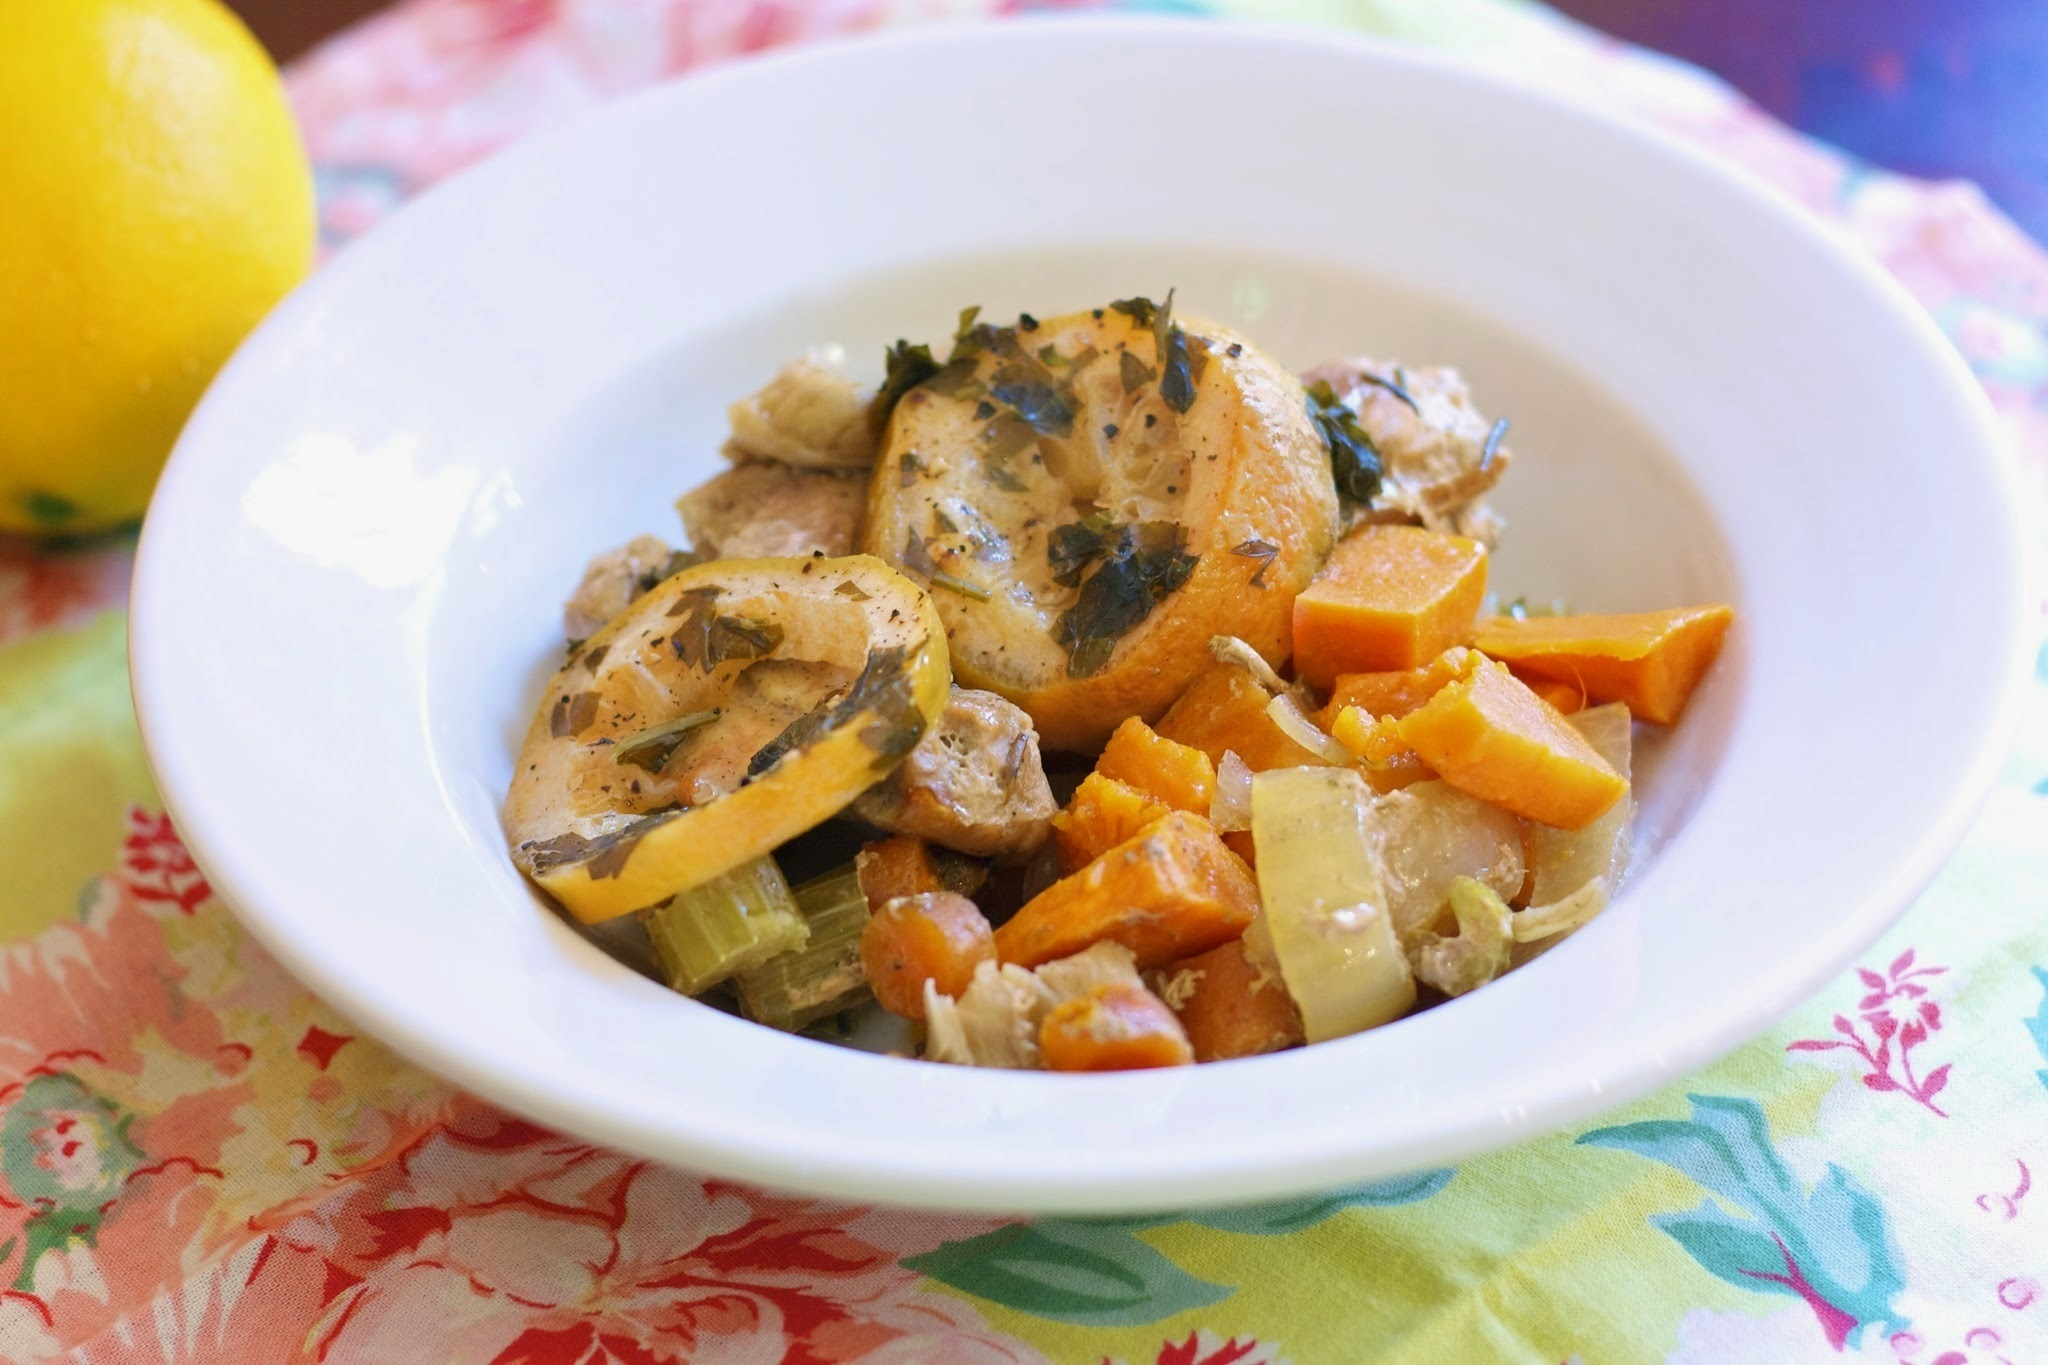 Slow Cooker Lemon Sweet Potato Chicken Inspired by Chicken in a Pot: The Garlic Lemon Version #French Fridays with Dorie